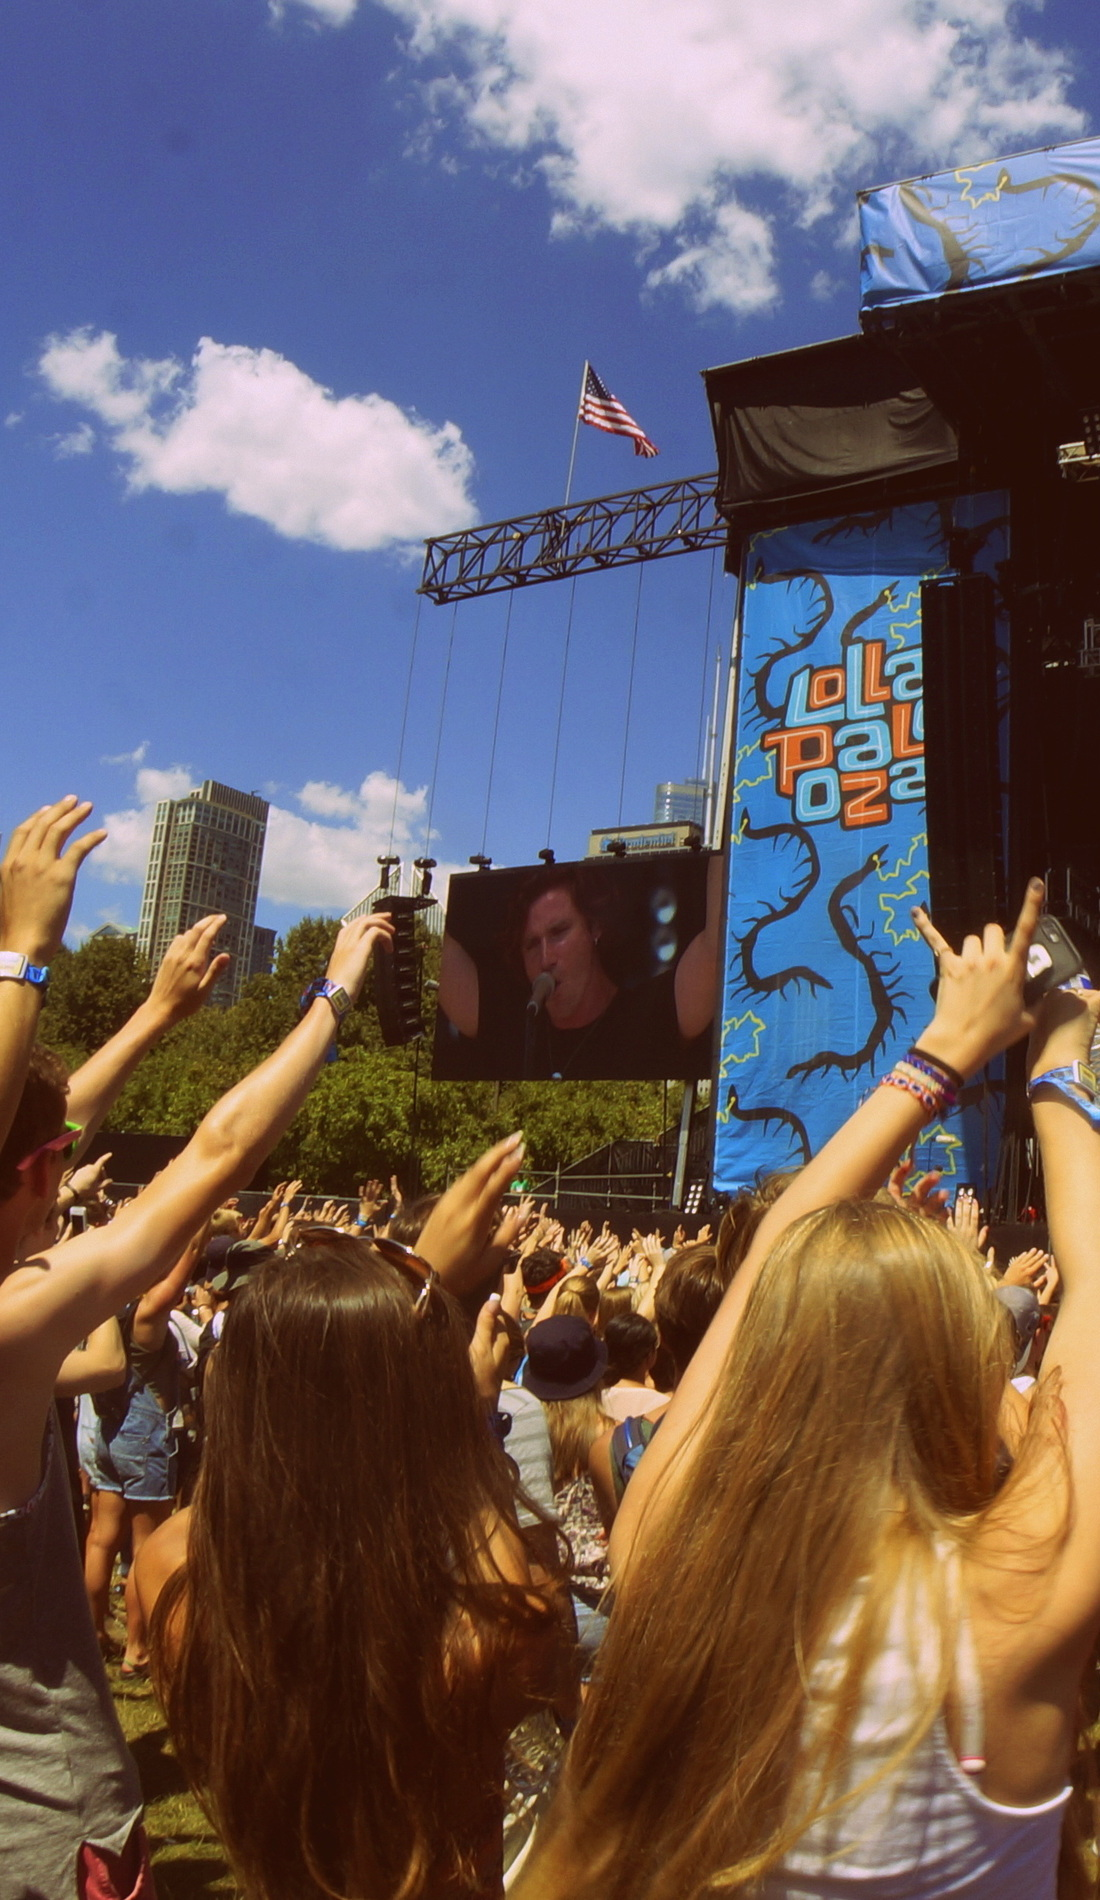 A Lollapalooza live event